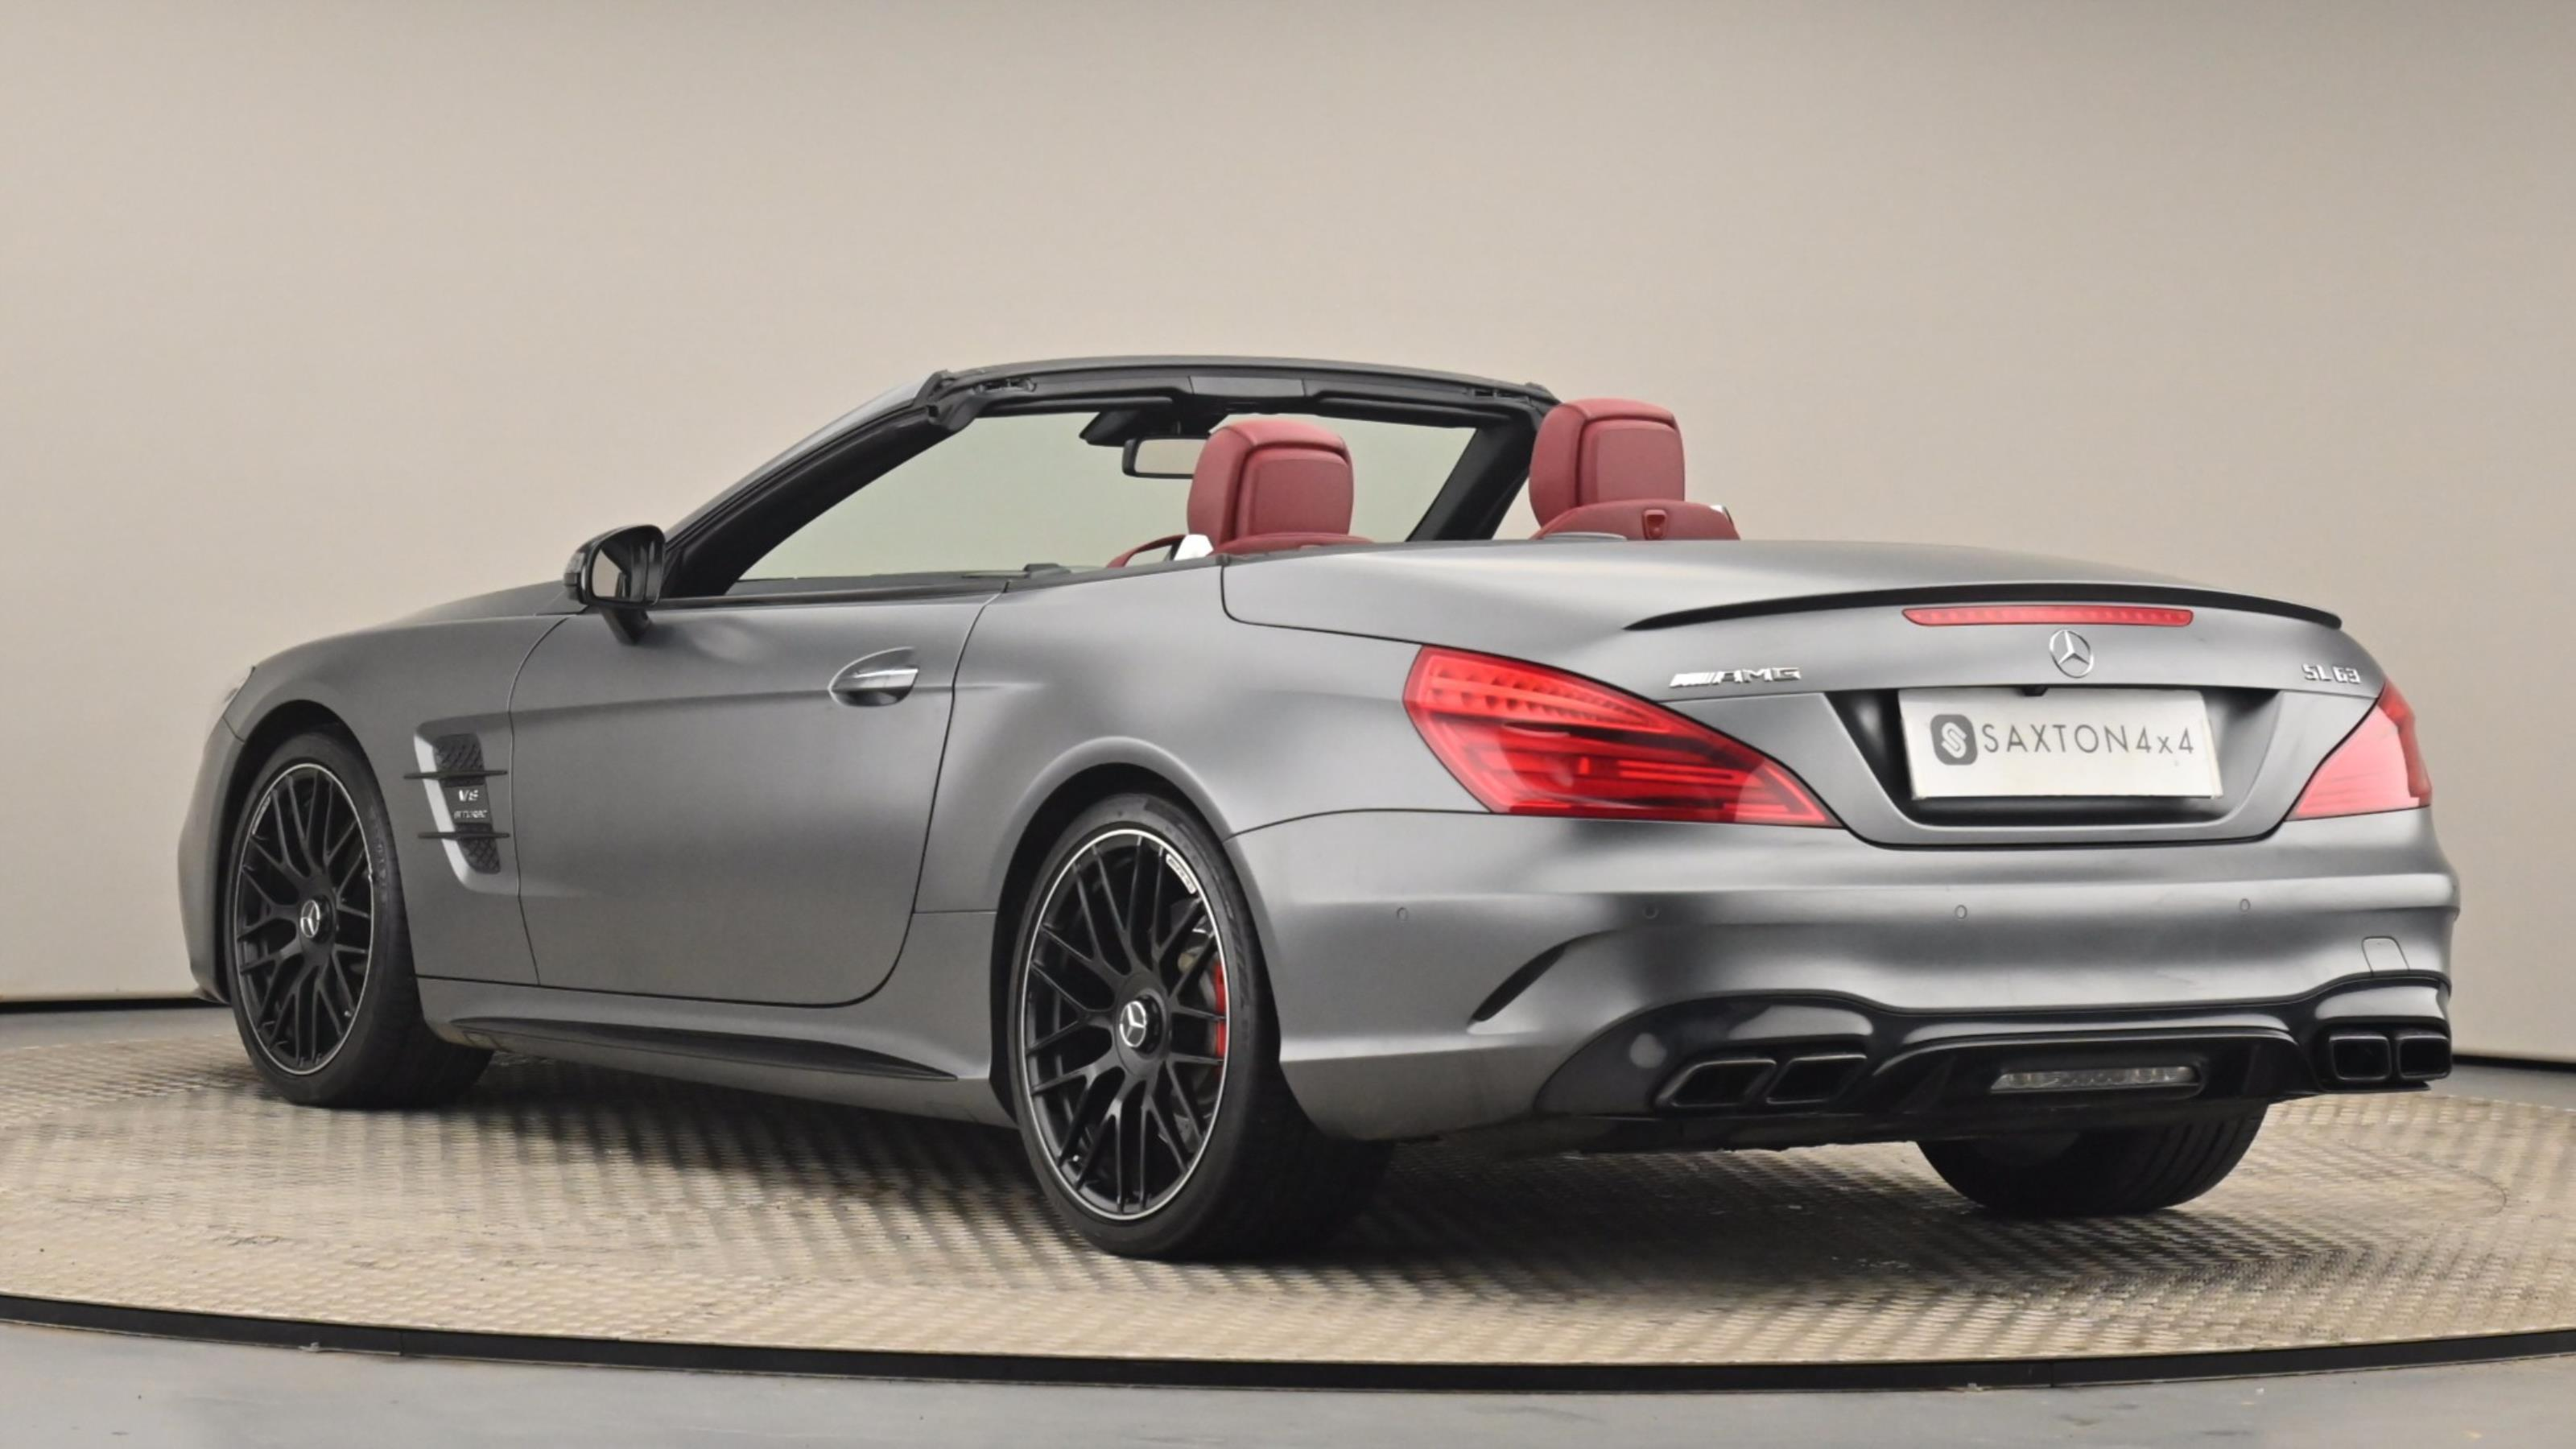 Used 2016 Mercedes-Benz SL CLASS SL 63 2dr MCT GREY at Saxton4x4